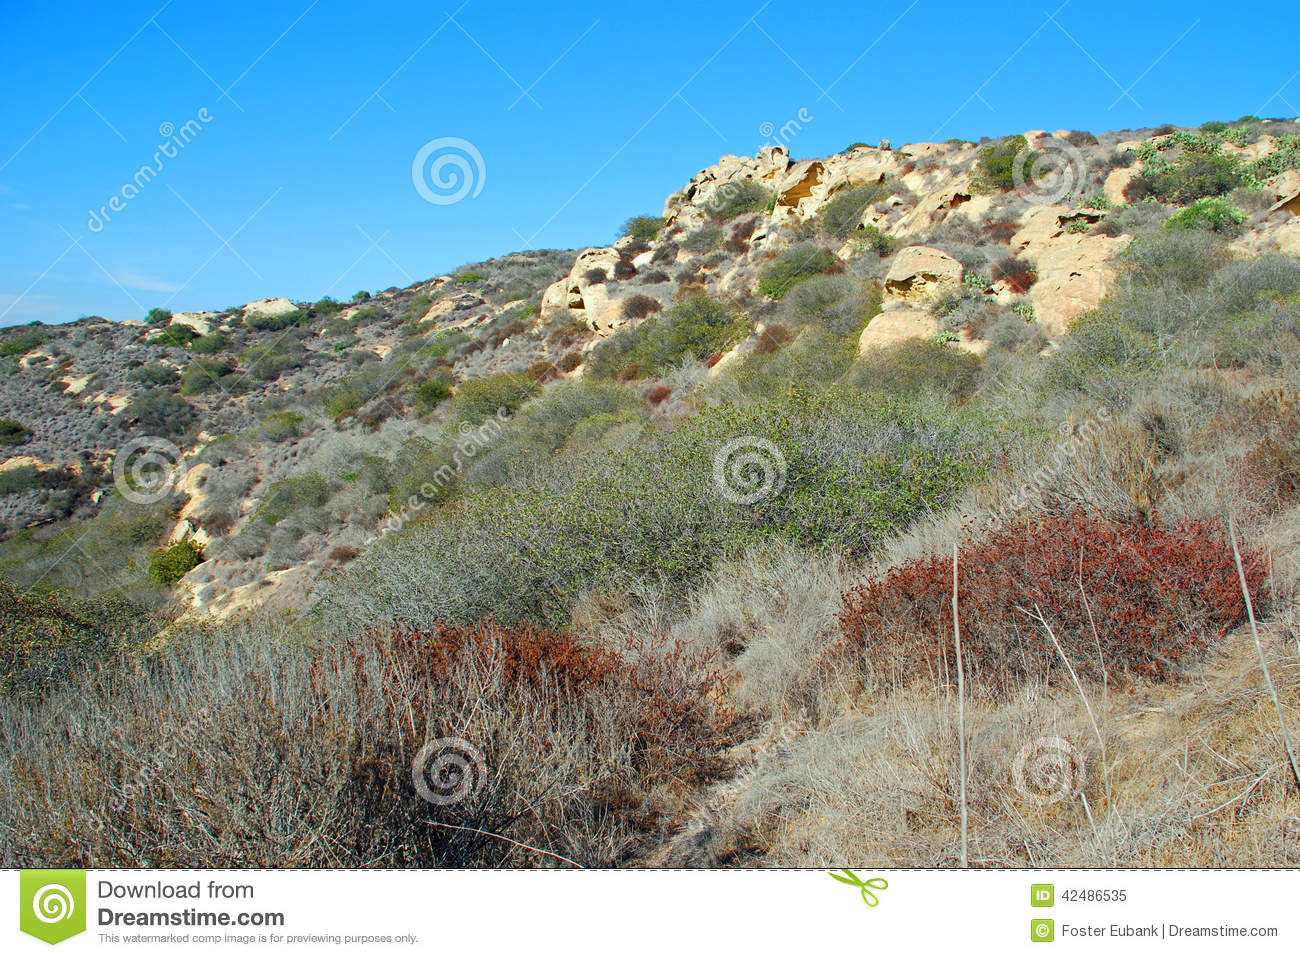 Chaparral In Laguna Canyon, Laguna Beach, CA. Stock Photo.